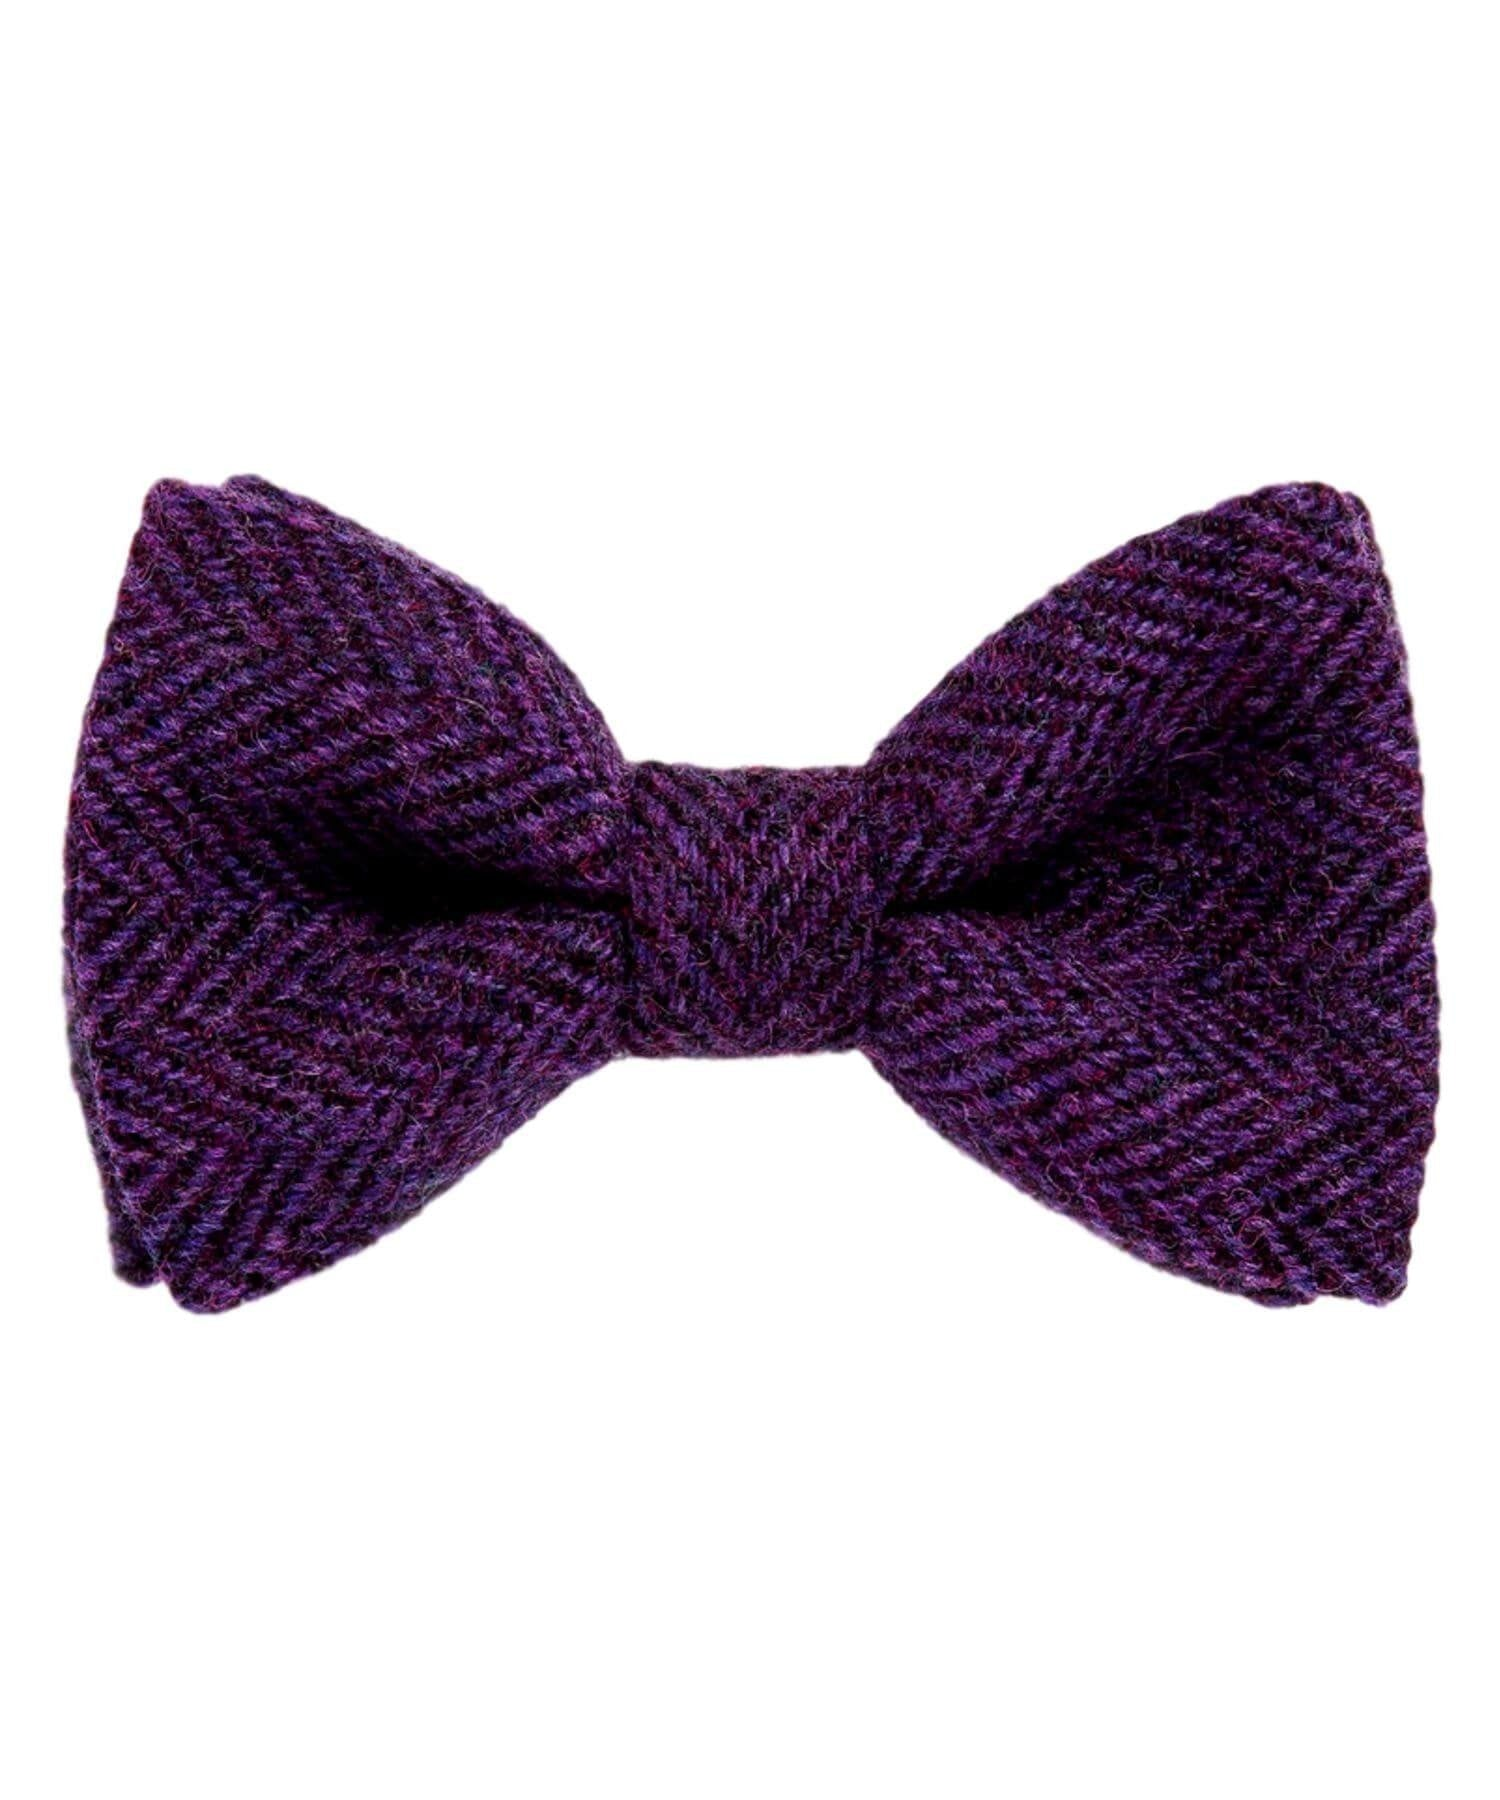 Donegal Tweed Bow Tie - Royal Purple - [Orwell & Browne] - Mens Accessories - Irish Gifts